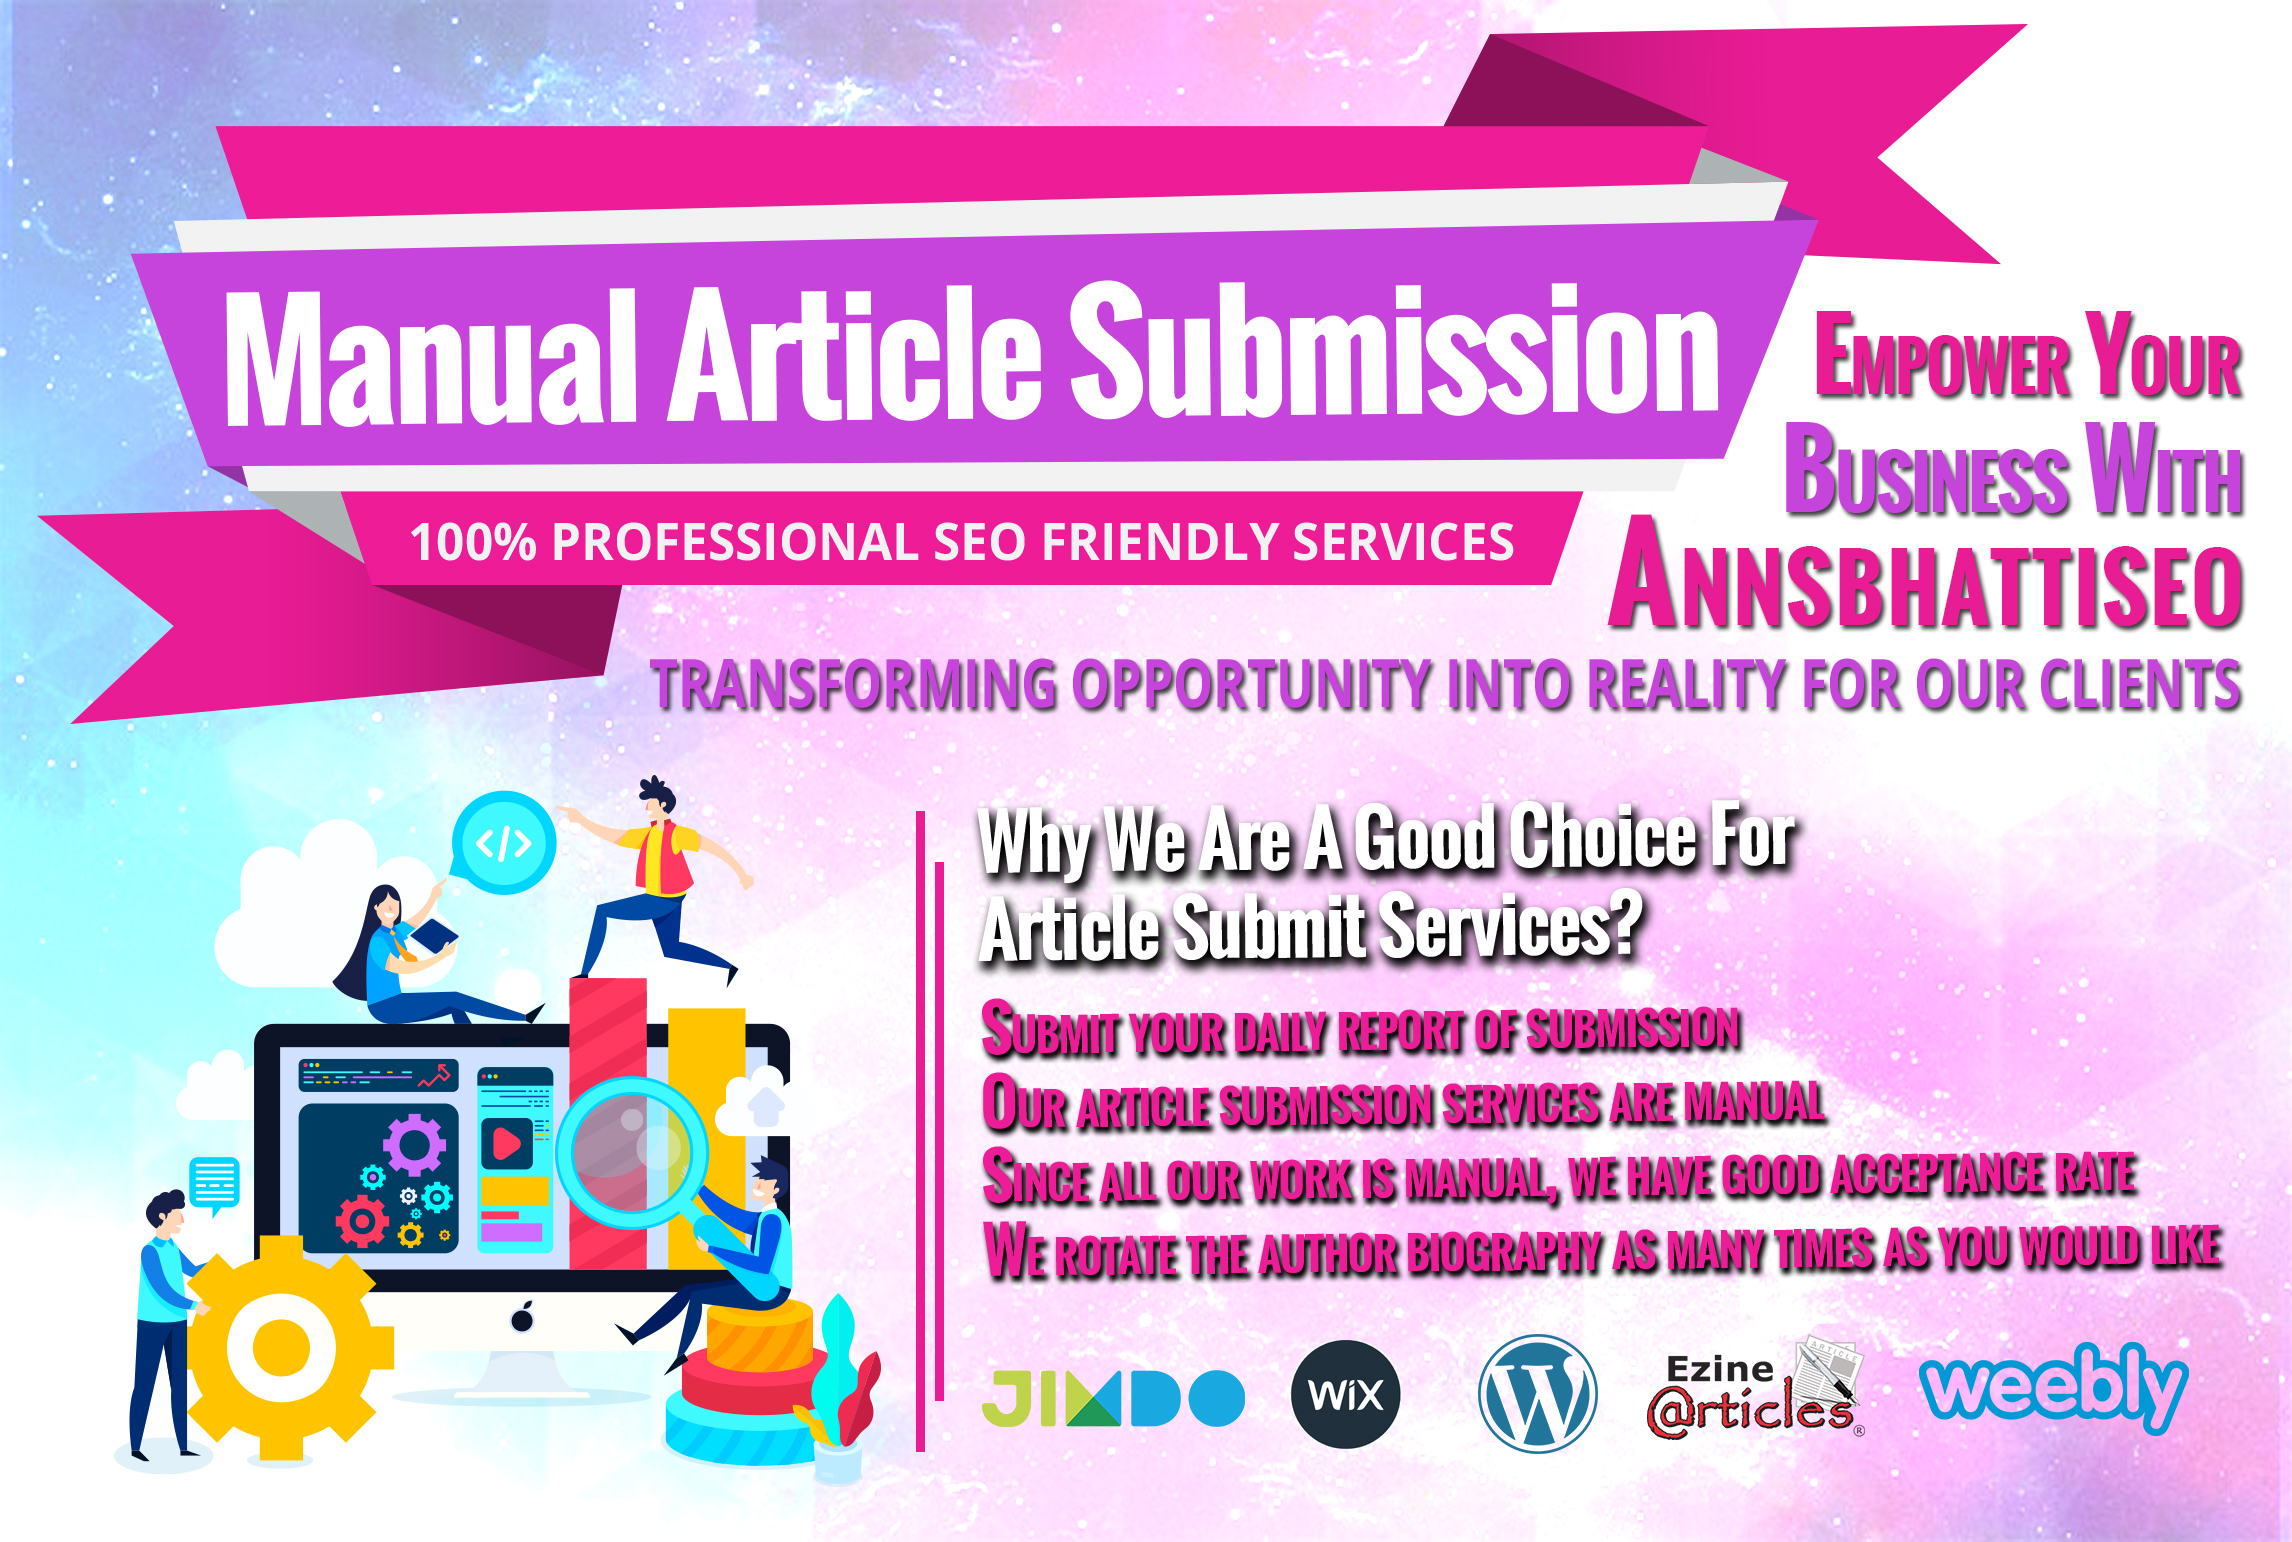 We do 25 Links 100 professional SEO friendly manual article submission services